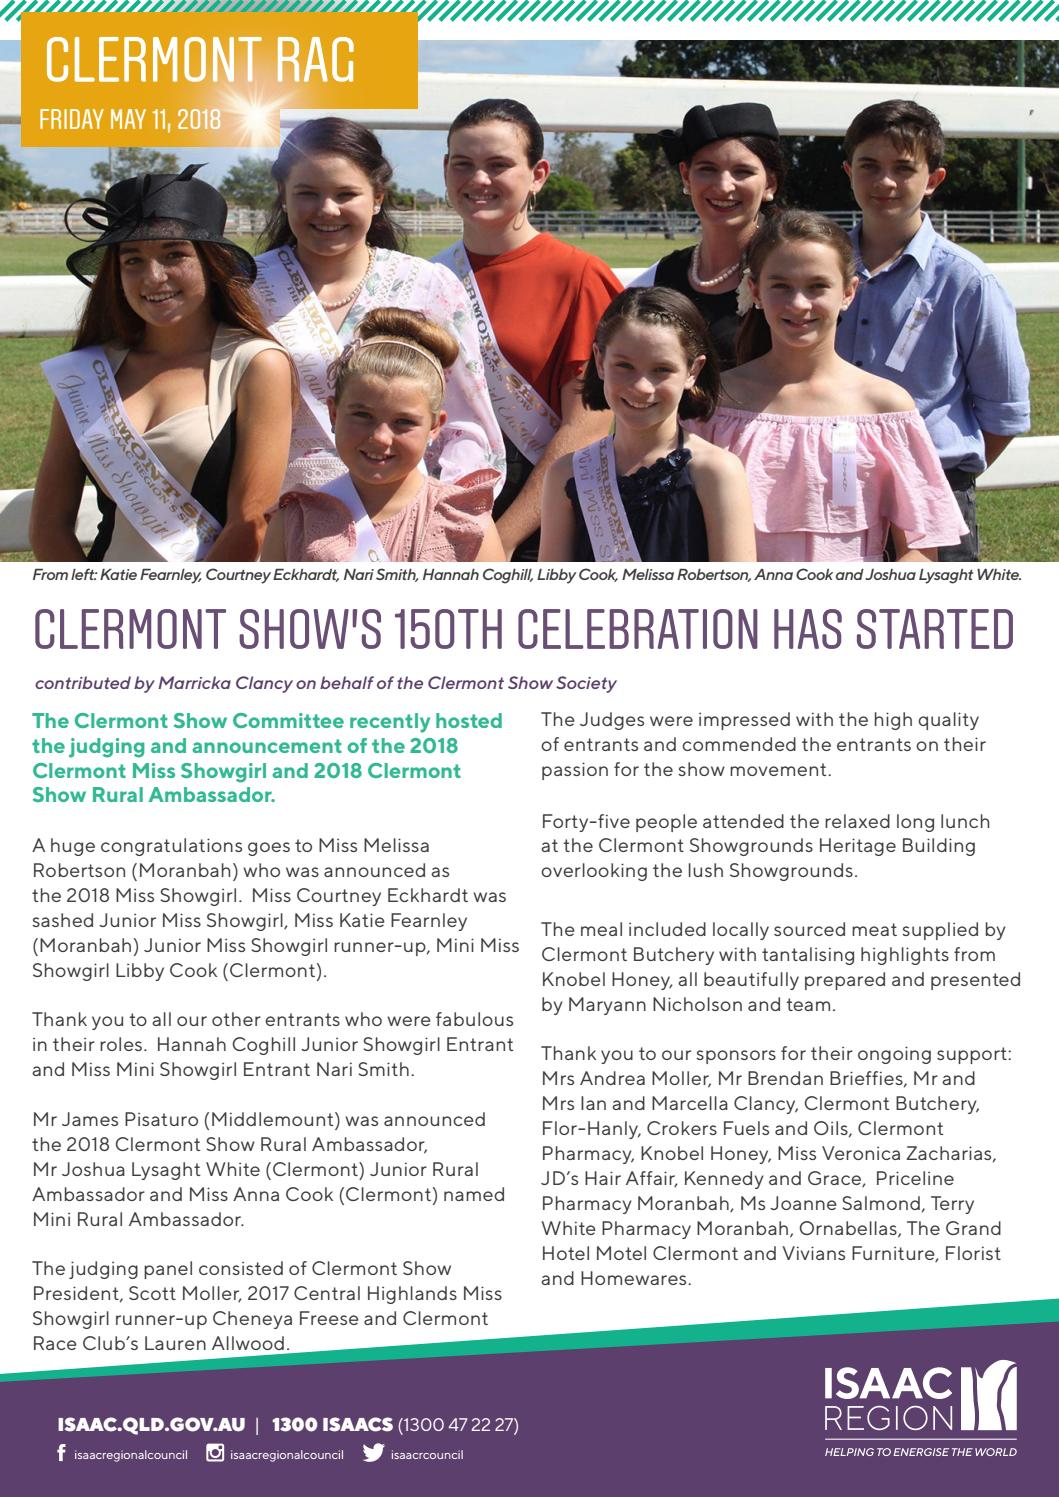 Clermont Rag 11 May 2018 by Isaac Regional Council - issuu